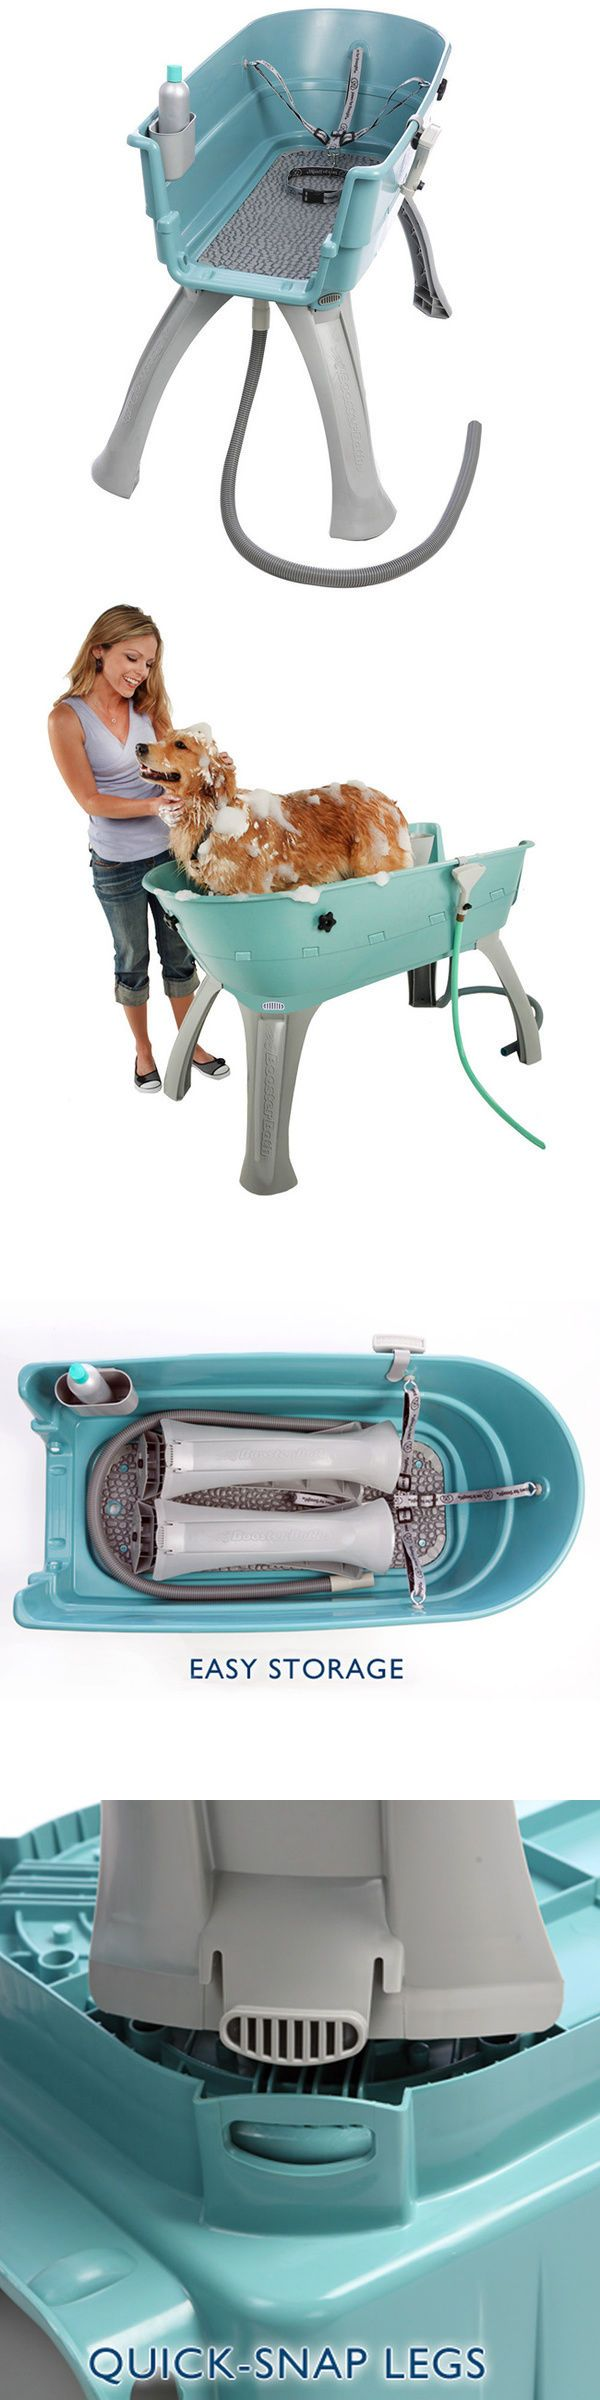 Shampooing and Washing 149019: Large Elevated Dog Bath Tub Pet Bathing Shower Grooming Booster Wash Station -> BUY IT NOW ONLY: $165.99 on eBay!